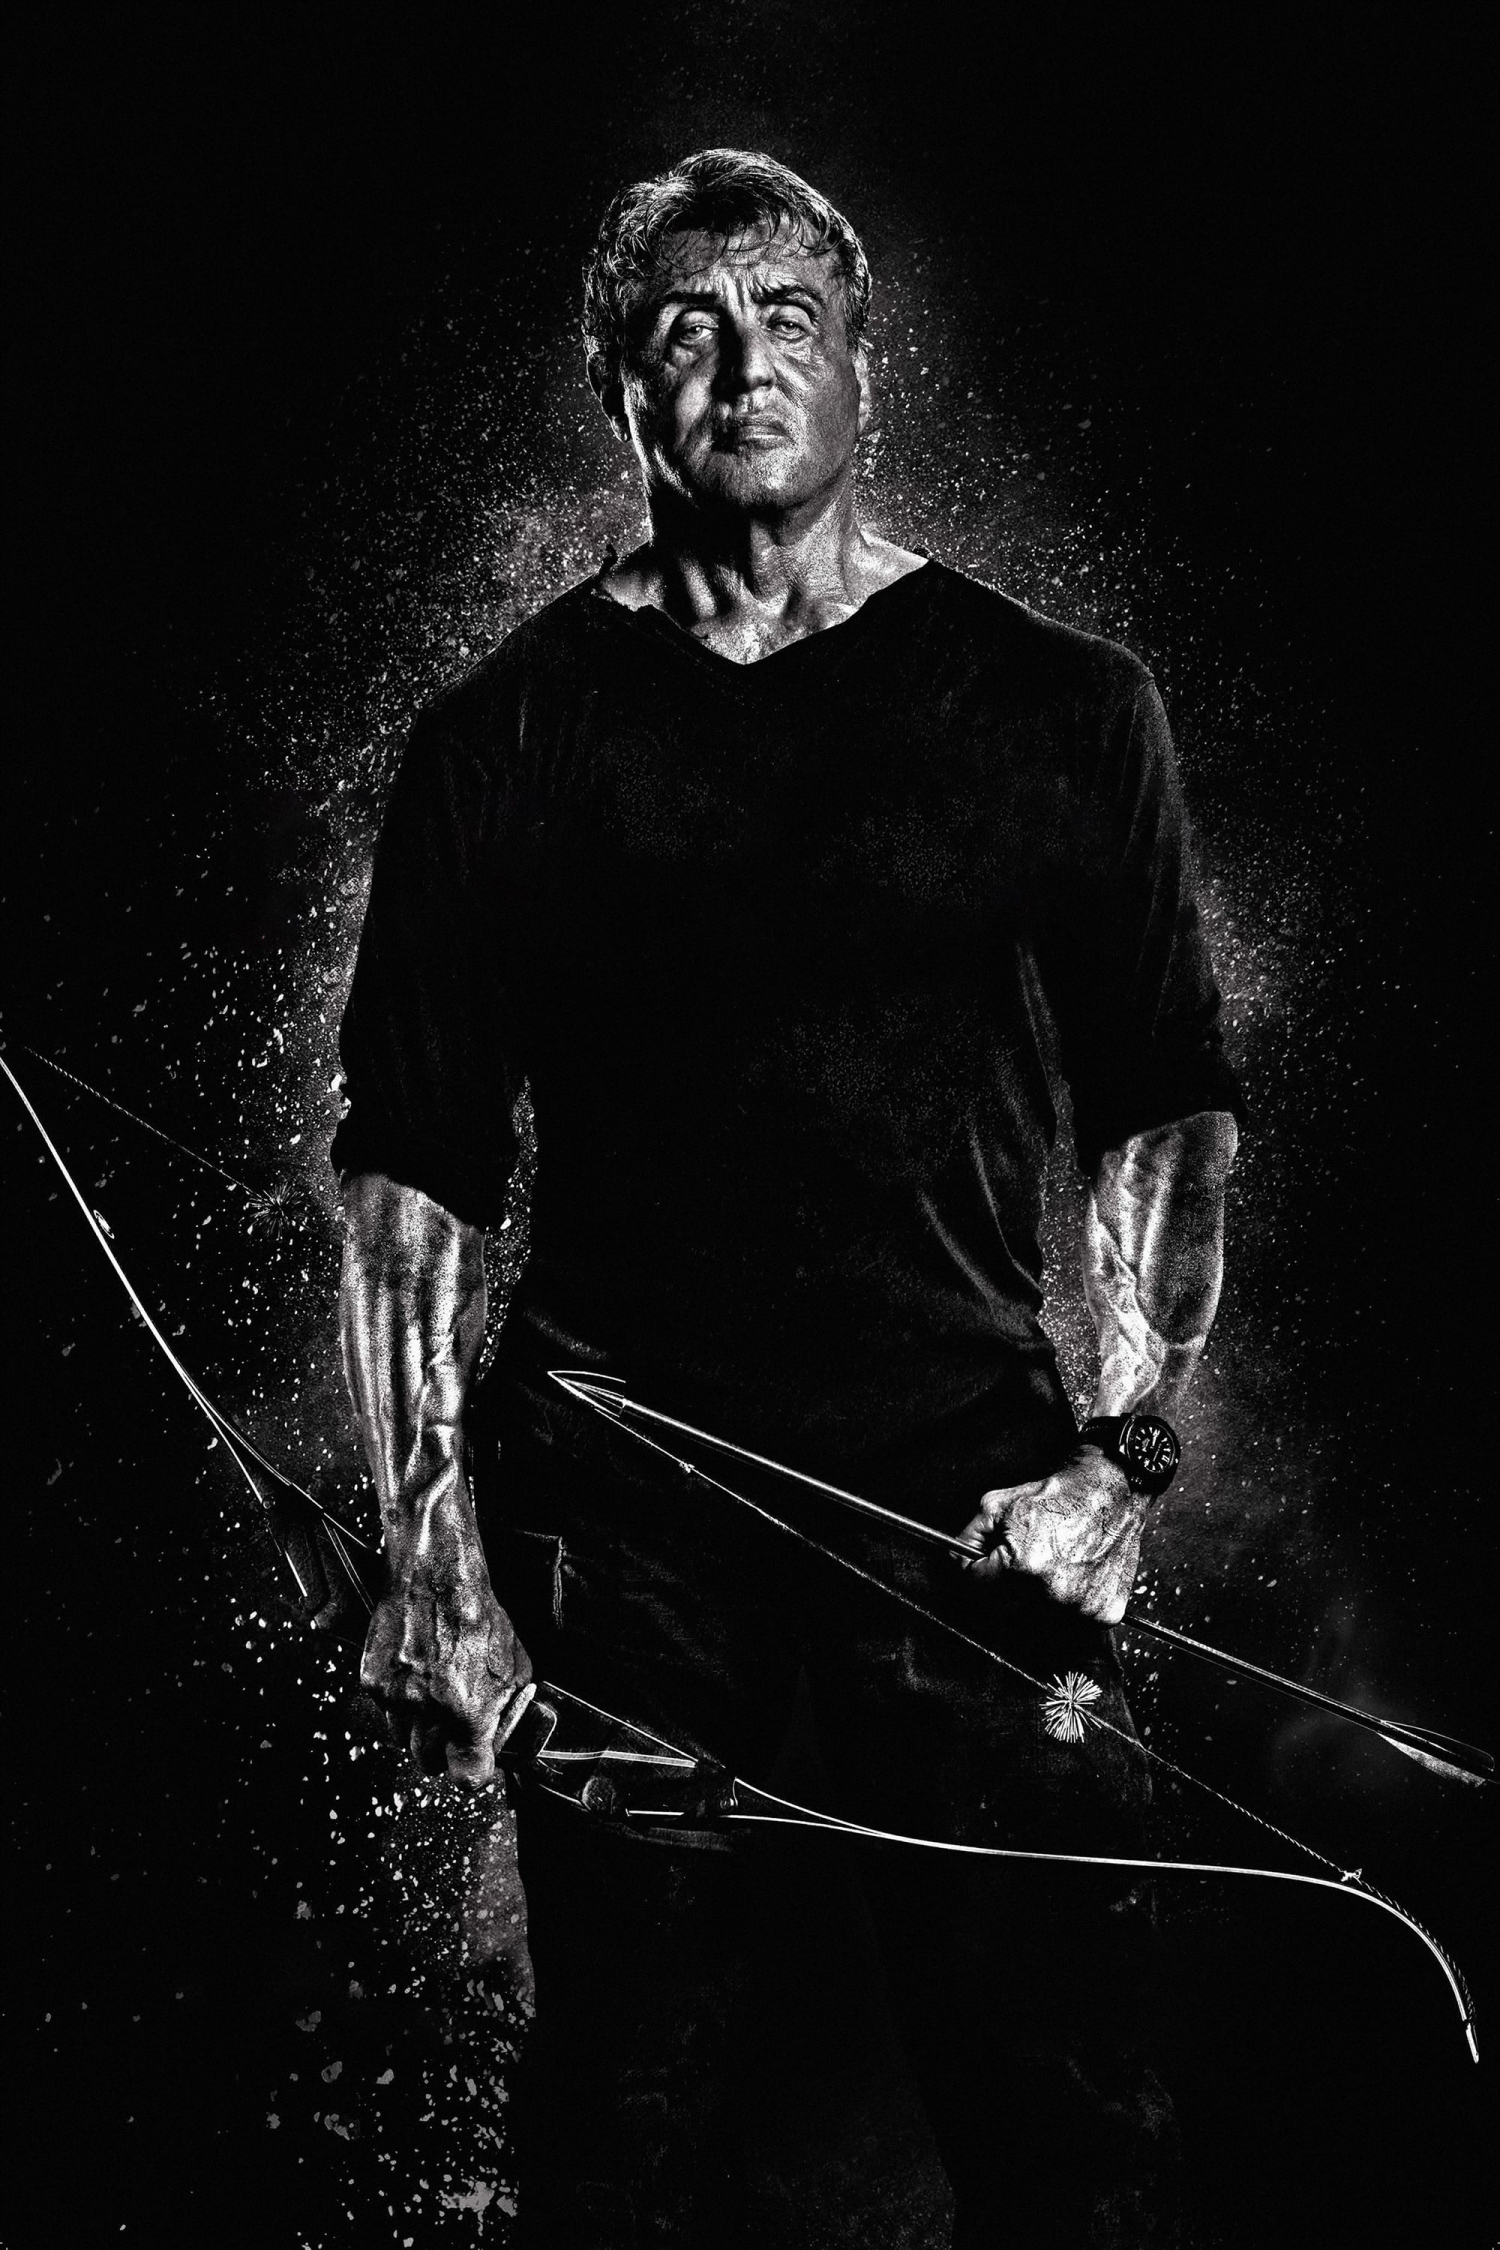 Rambo: Last Blood - Movie info and showtimes in Trinidad and Tobago - ID 2574